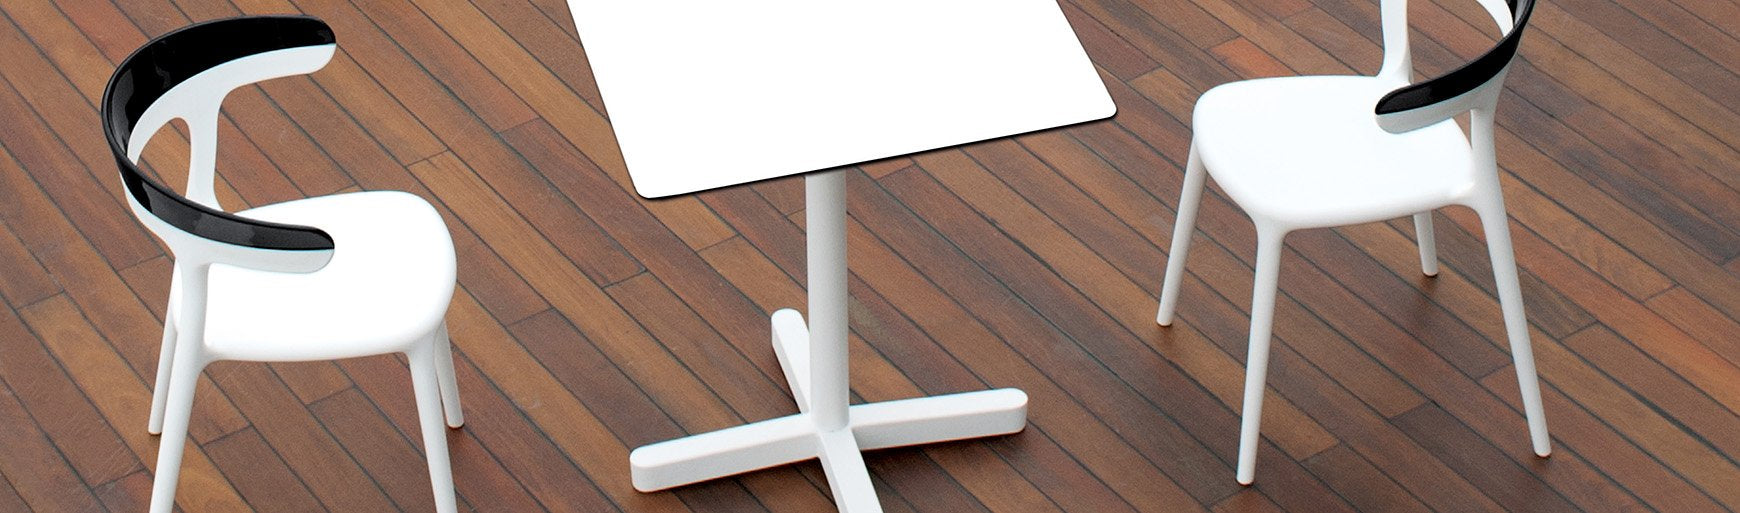 Spot Double Stem Table